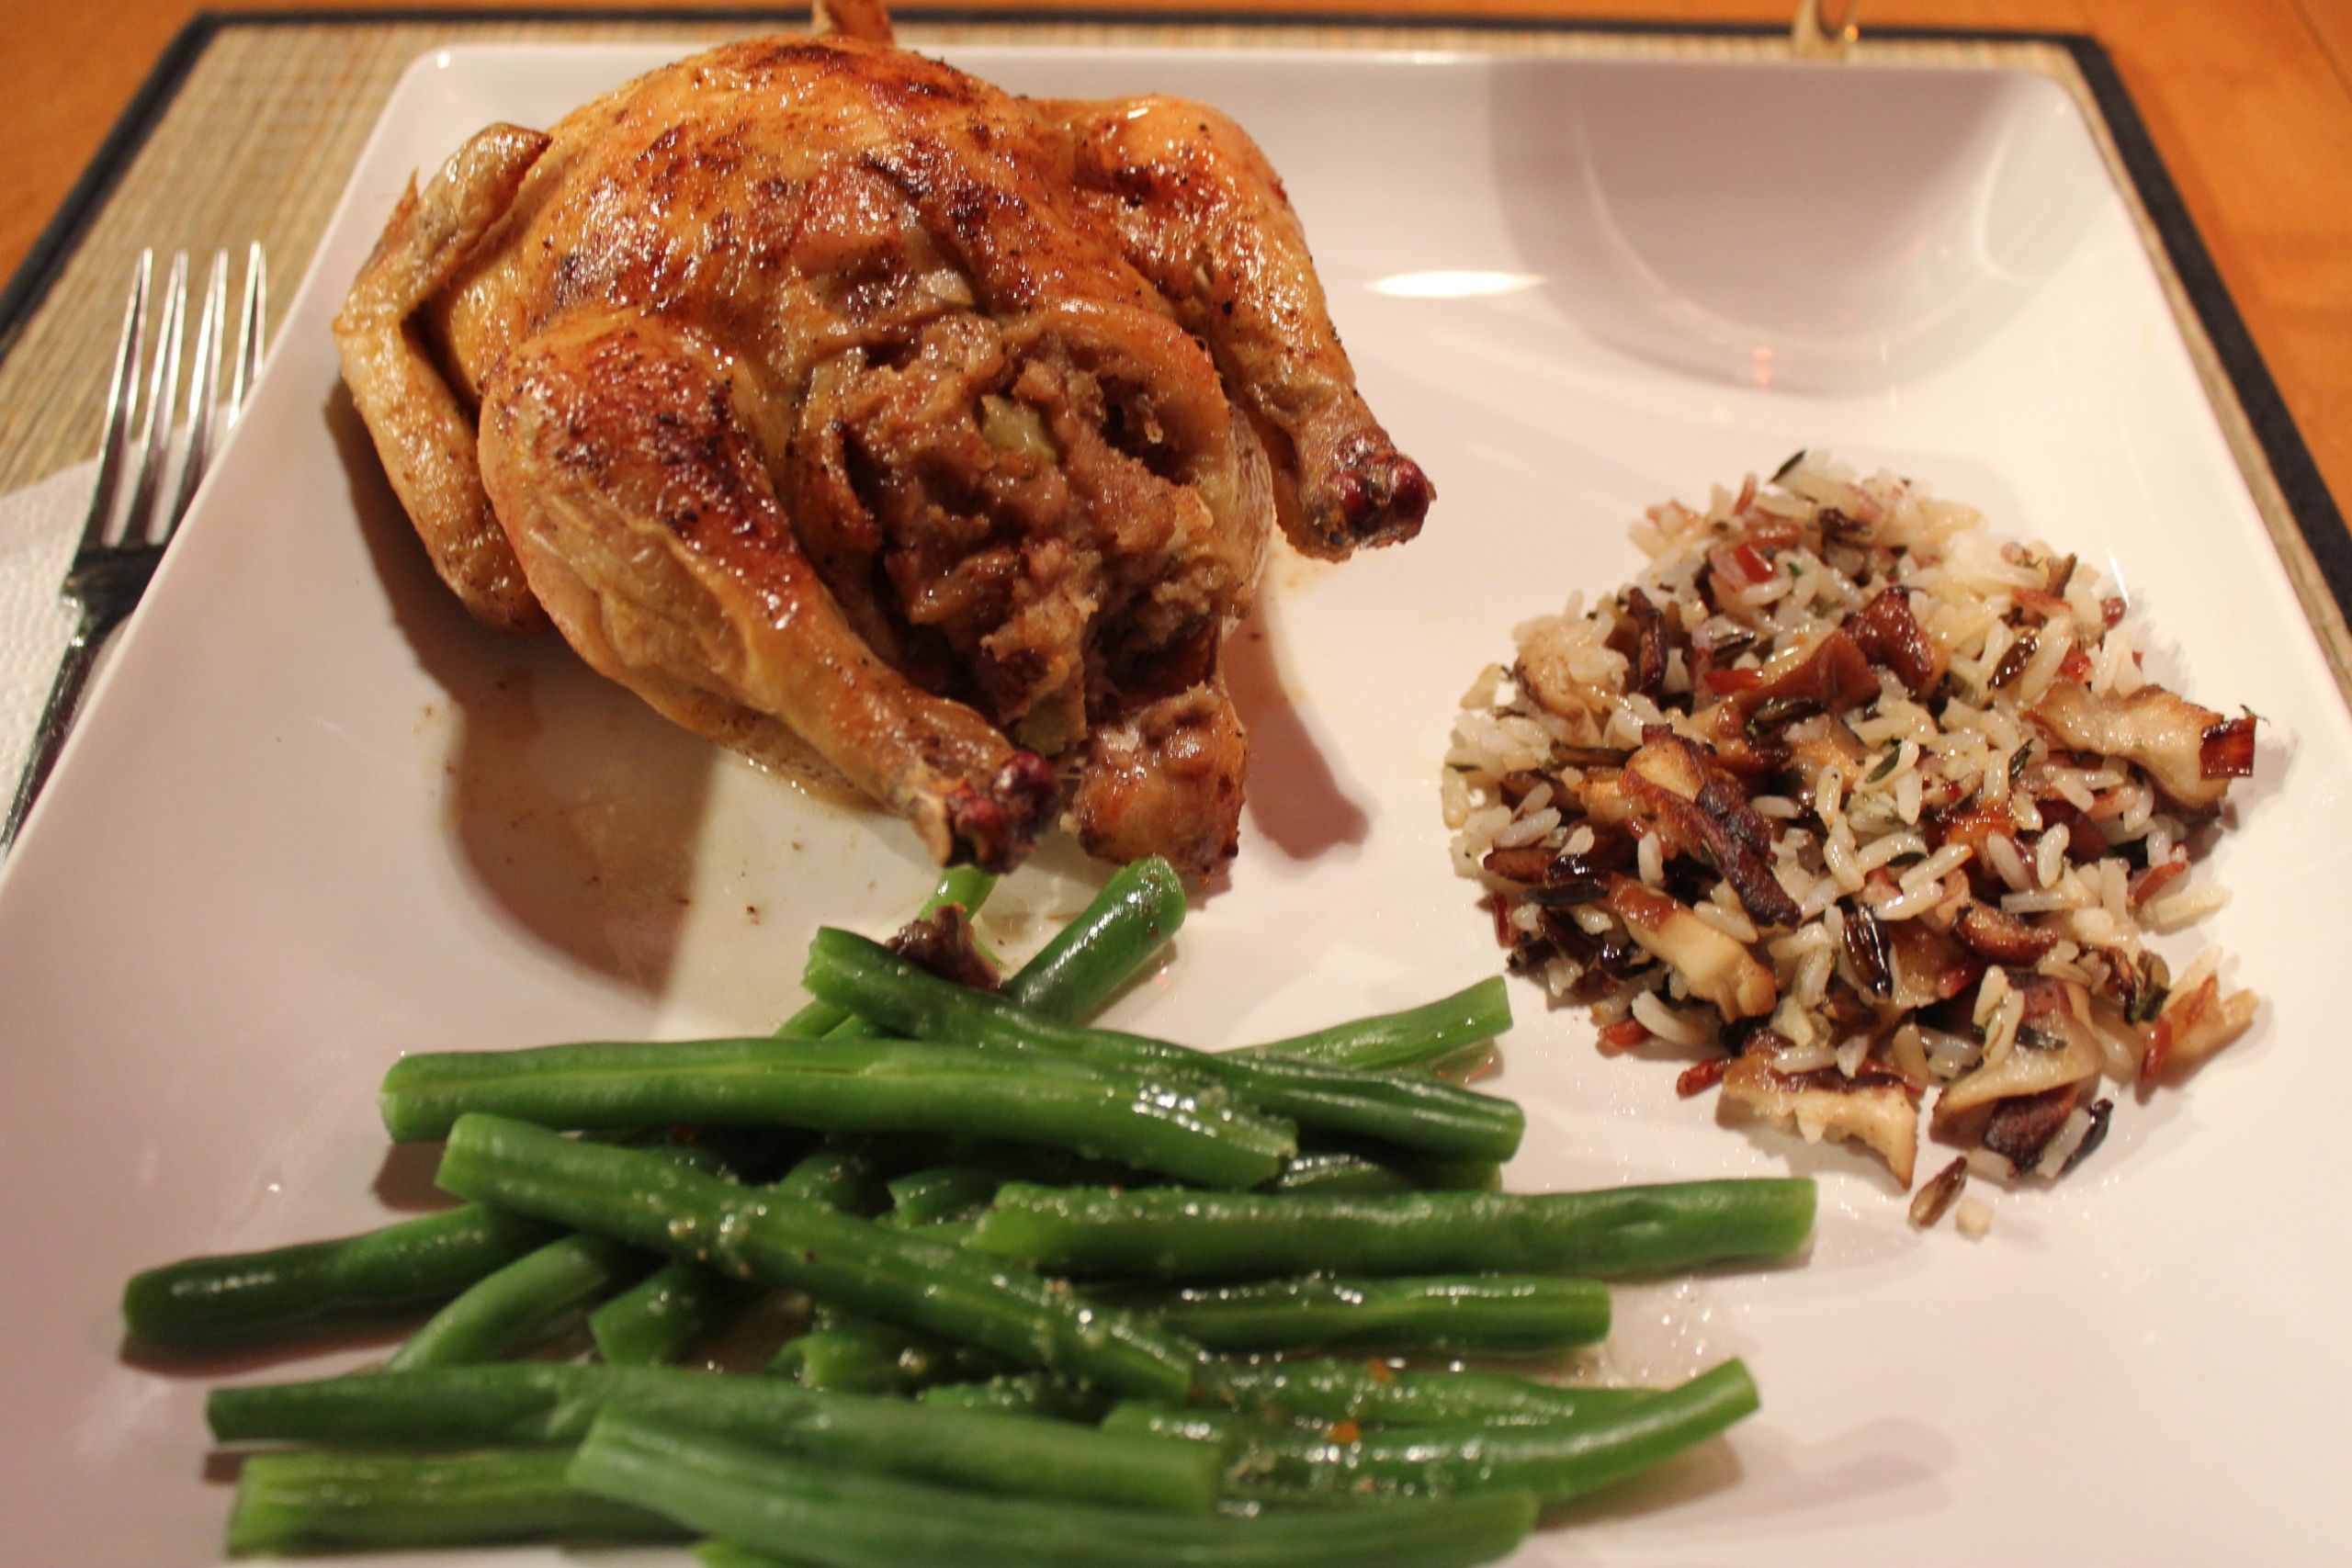 Recipes For Cornish Game Hens  Cornish Game Hens Stuffed Two Ways Part Two Apple Walnut